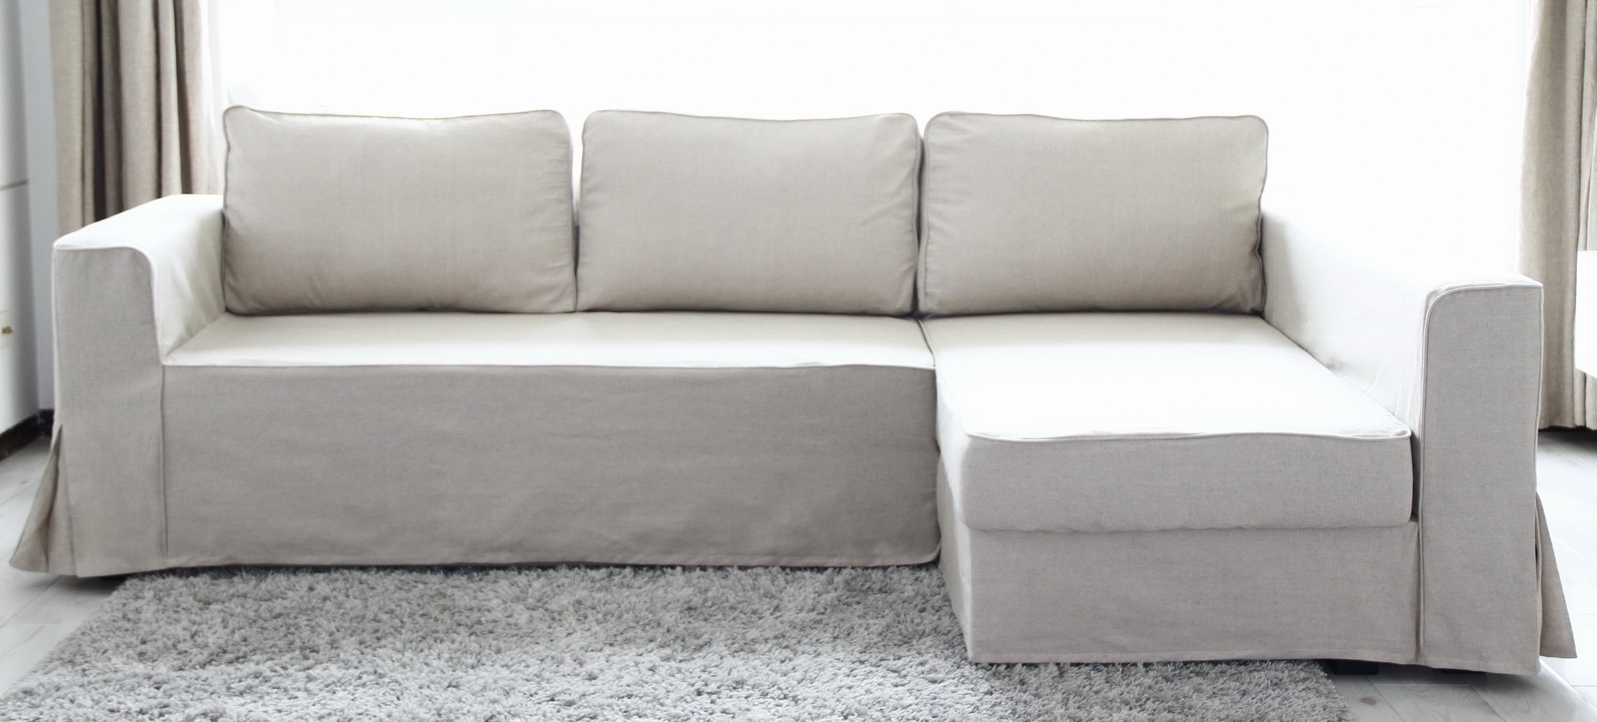 Fashionable Loose Fit Linen Manstad Sofa Slipcovers Now Available Inside Manstad Sofas (View 11 of 20)